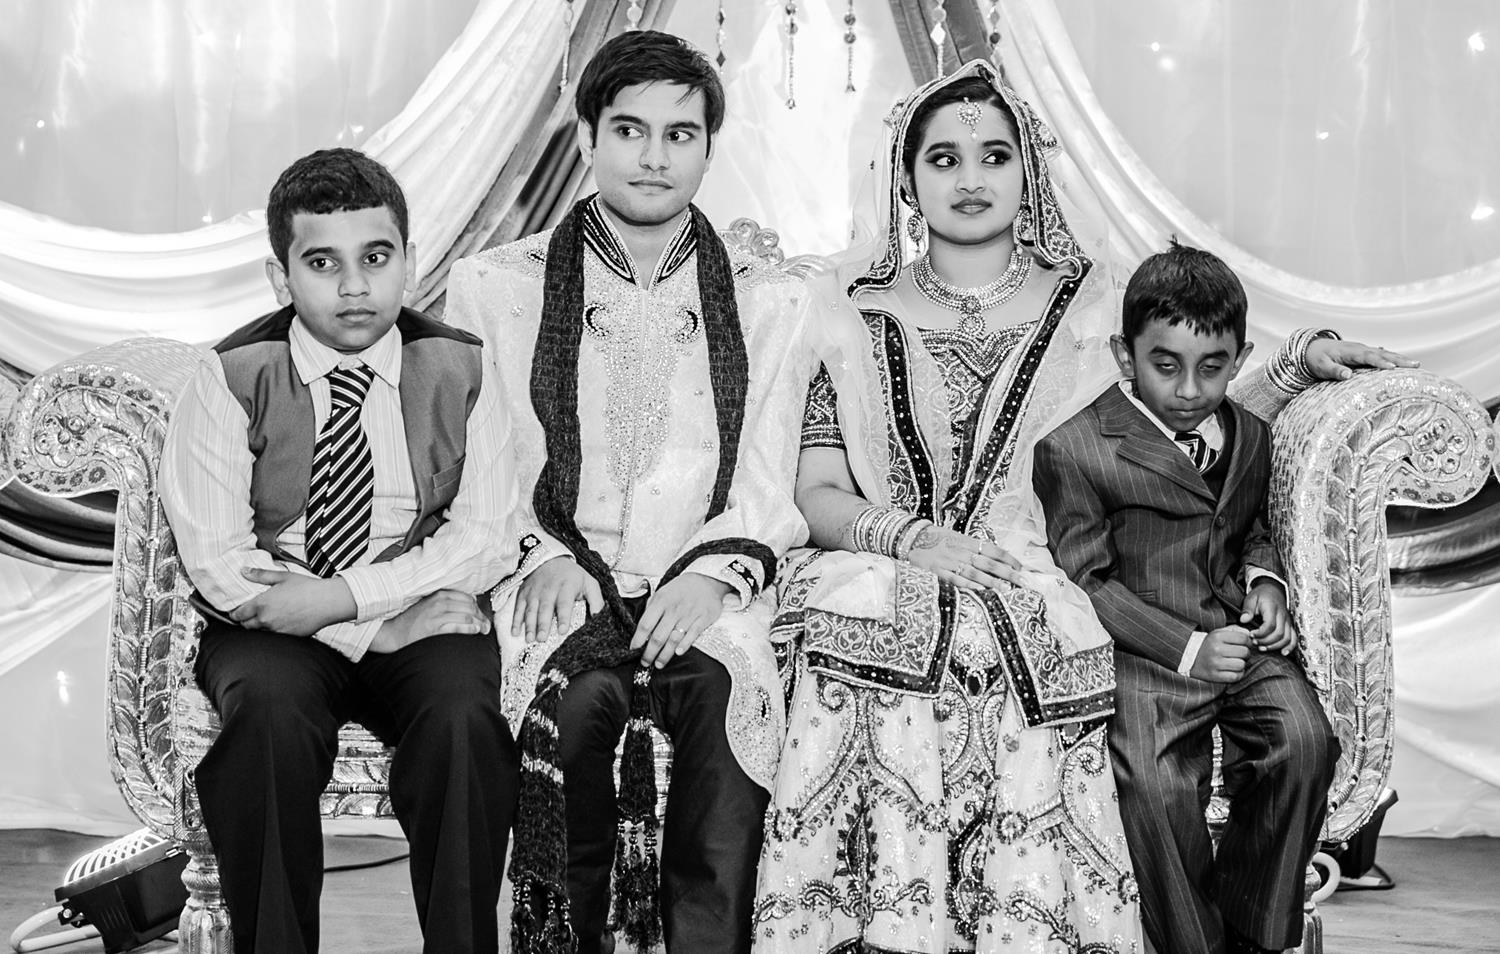 Black and White Wedding Photography of Bride and Groom by MAKSAM London Photographer